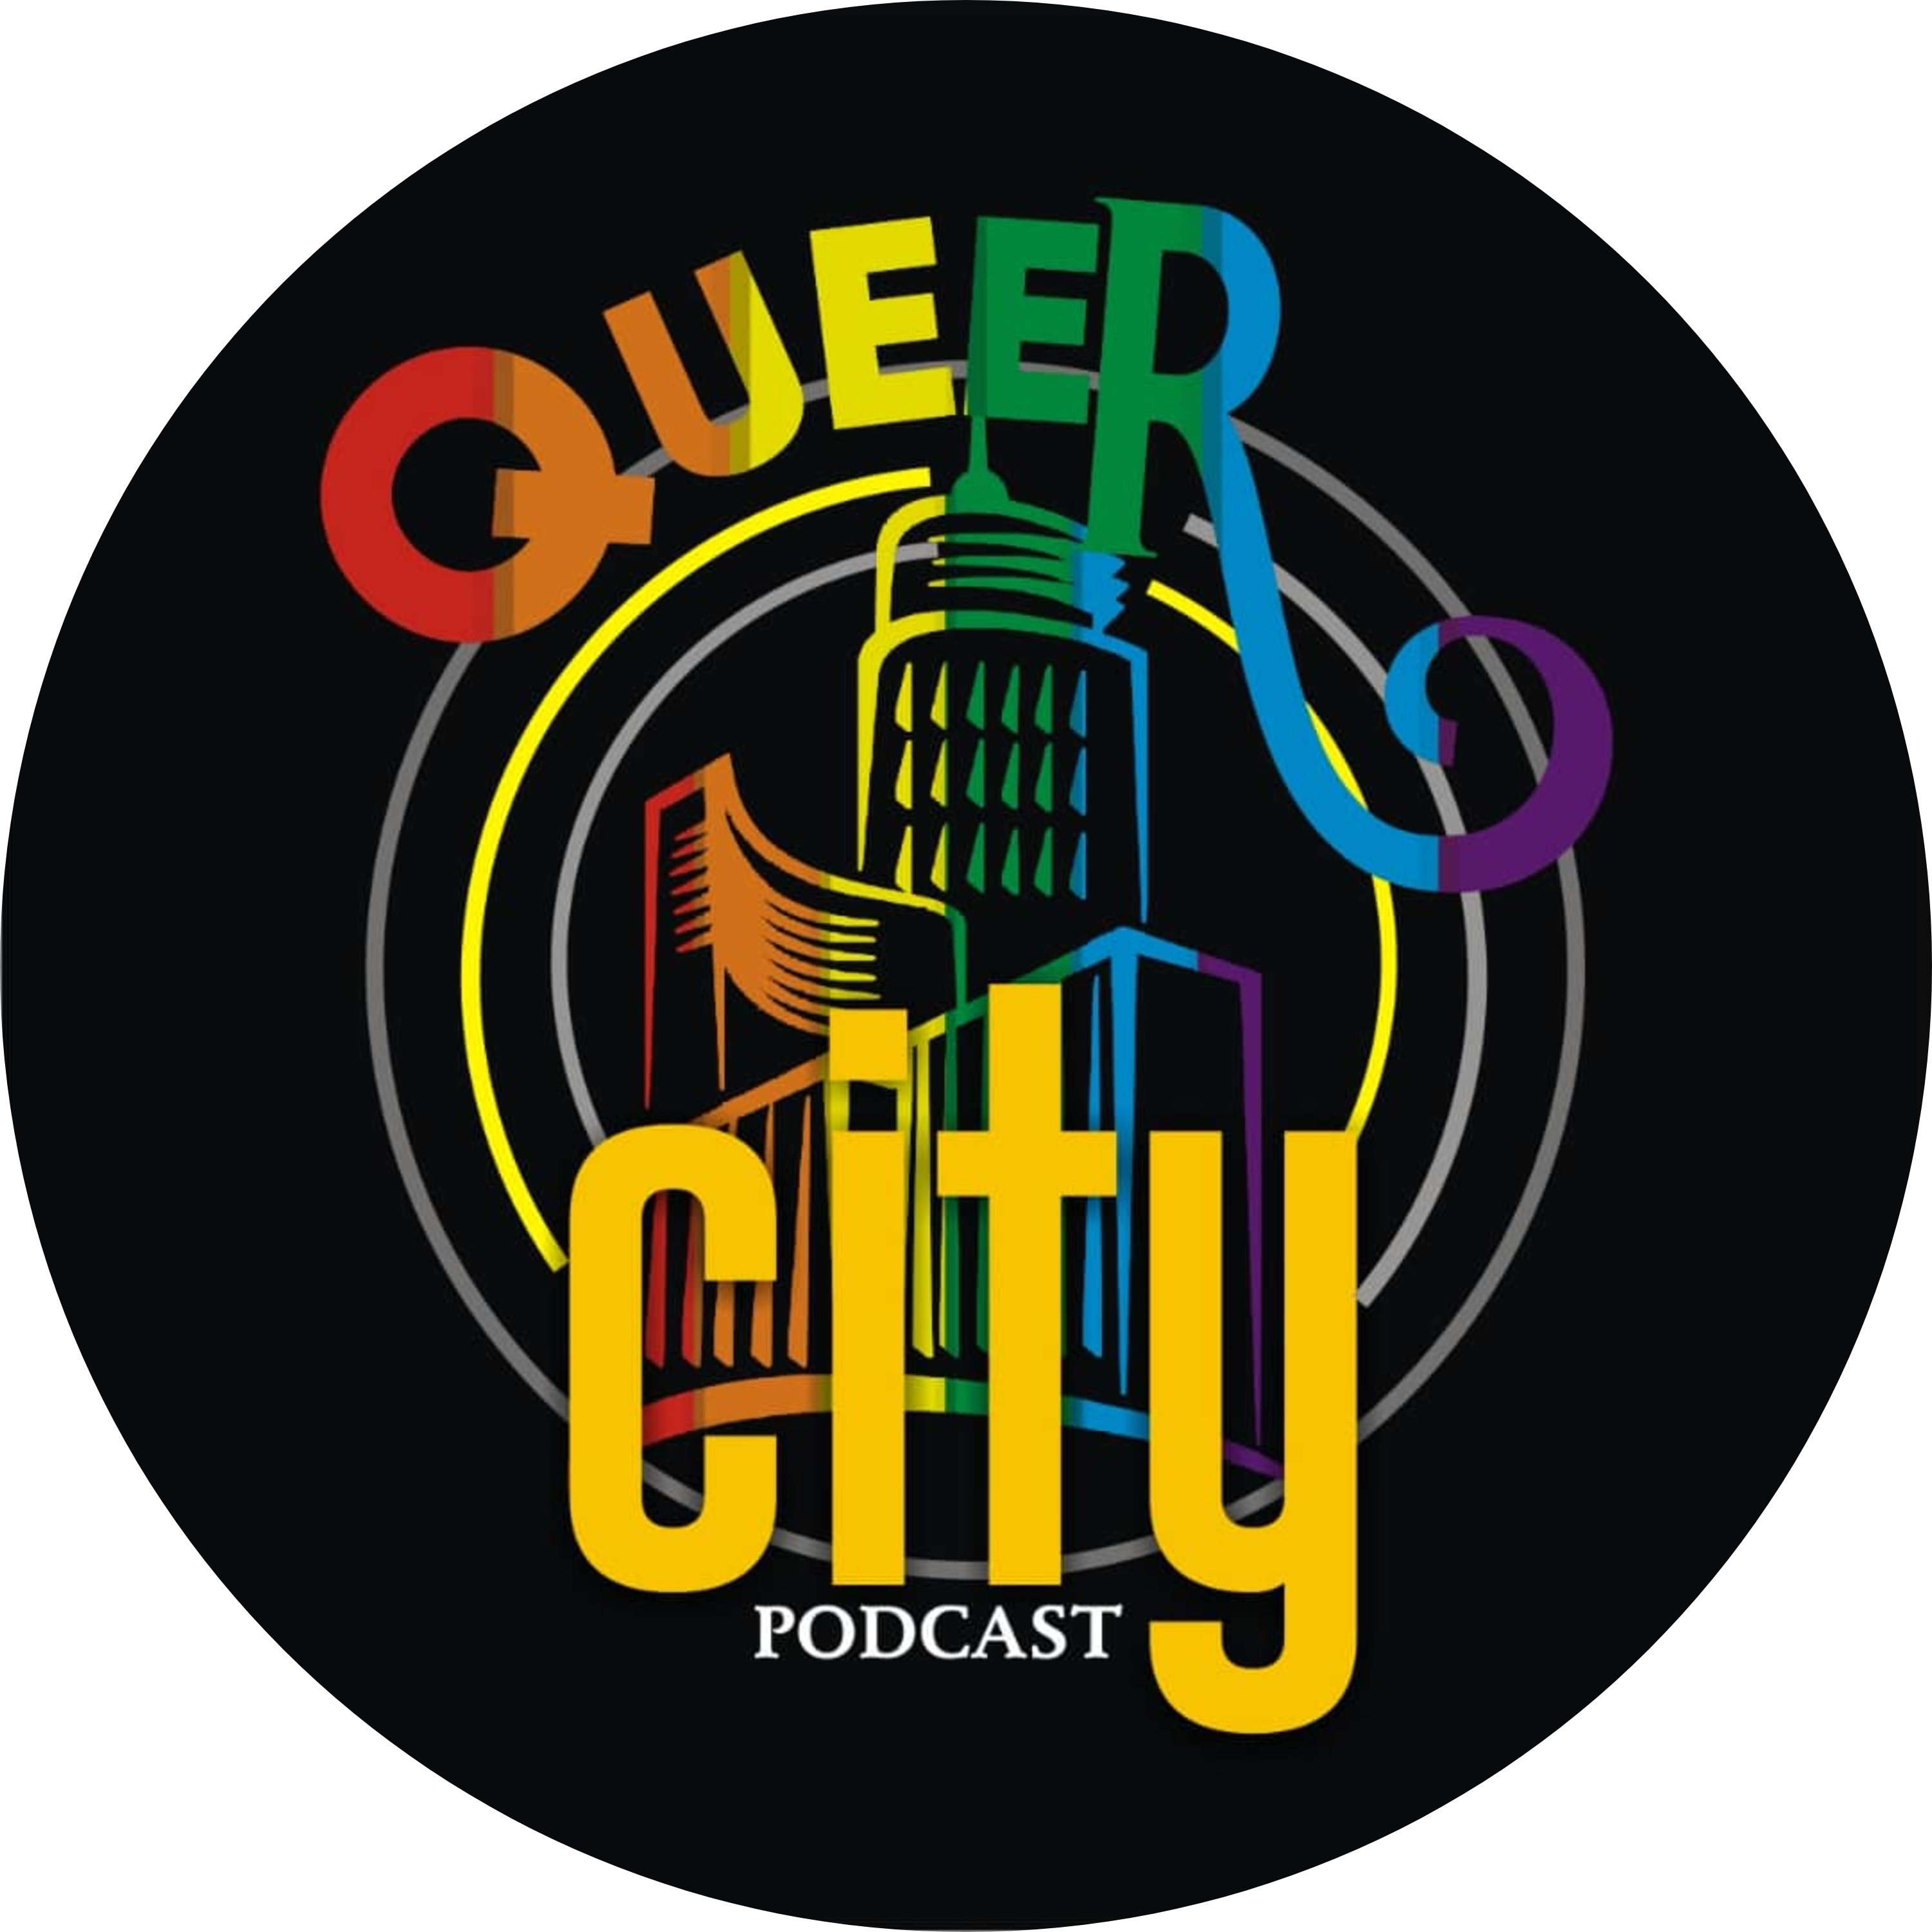 QUEERCITY MEDIA AND PRODUCTION (queercitypodcast) Profile Image | Linktree